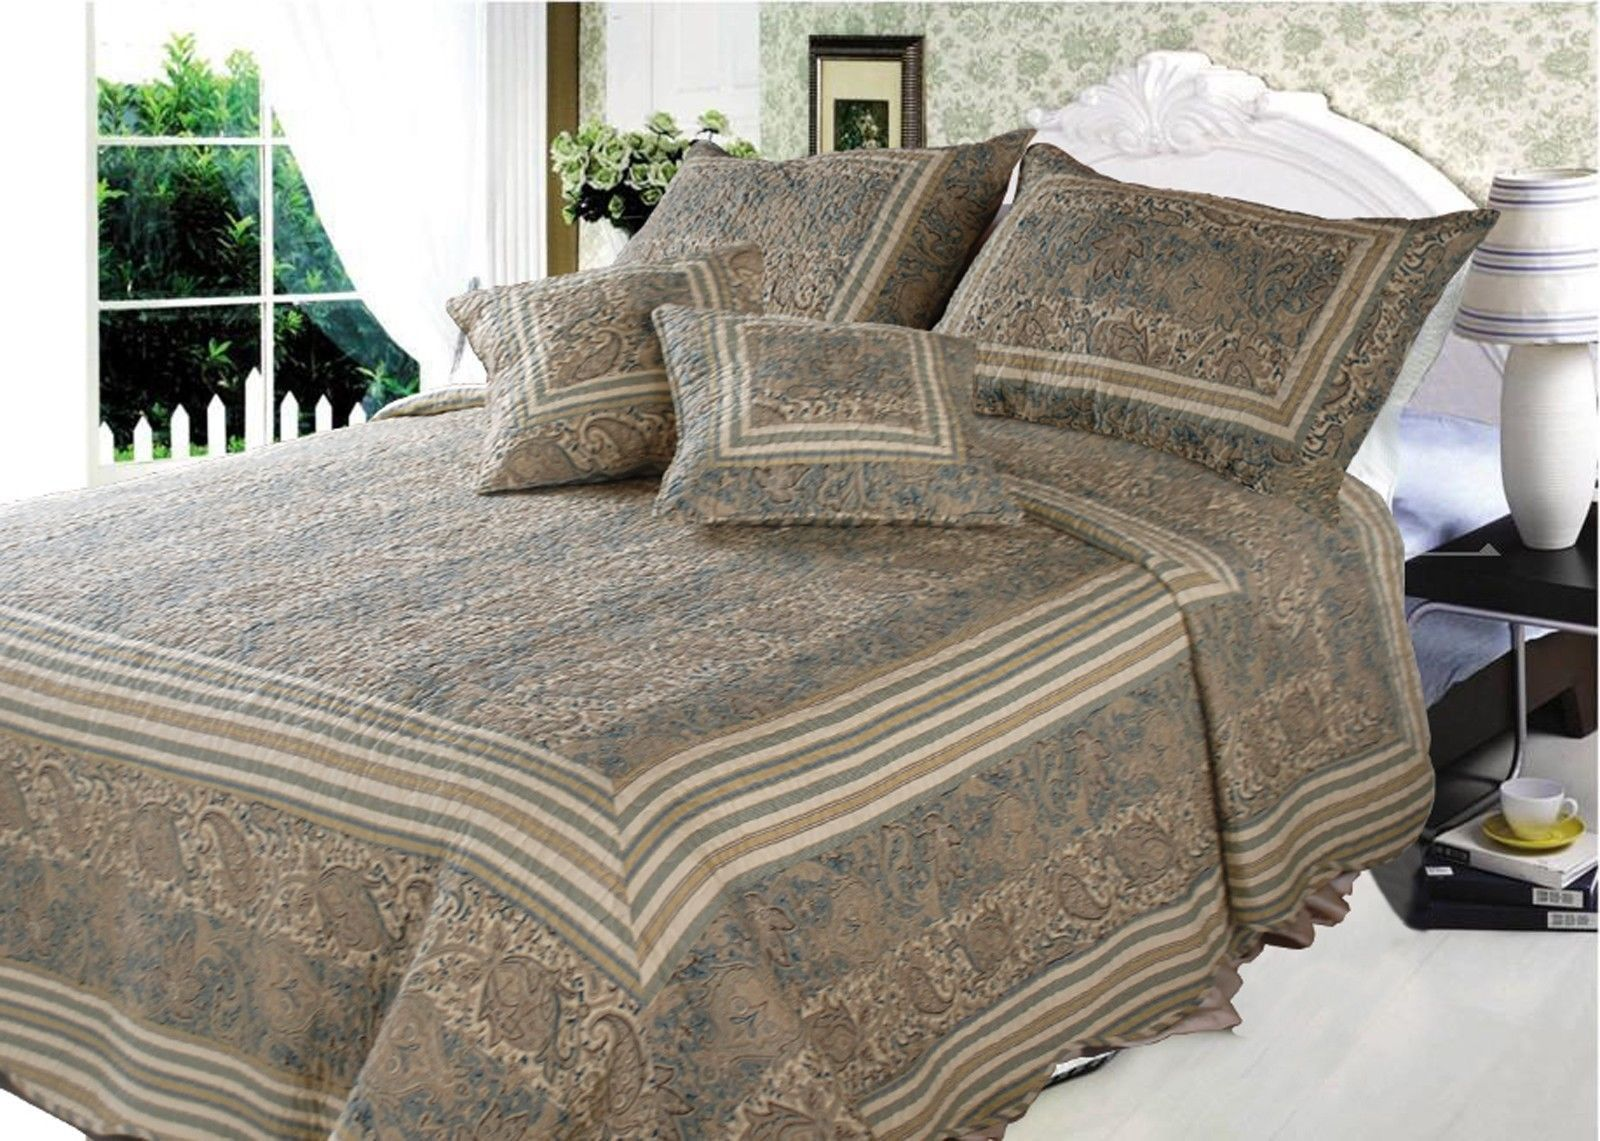 DaDa Bedding Reversible Cotton Paisley Paradise Quilt Bed Set, King, Queen, Twin, 3-5 Pieces